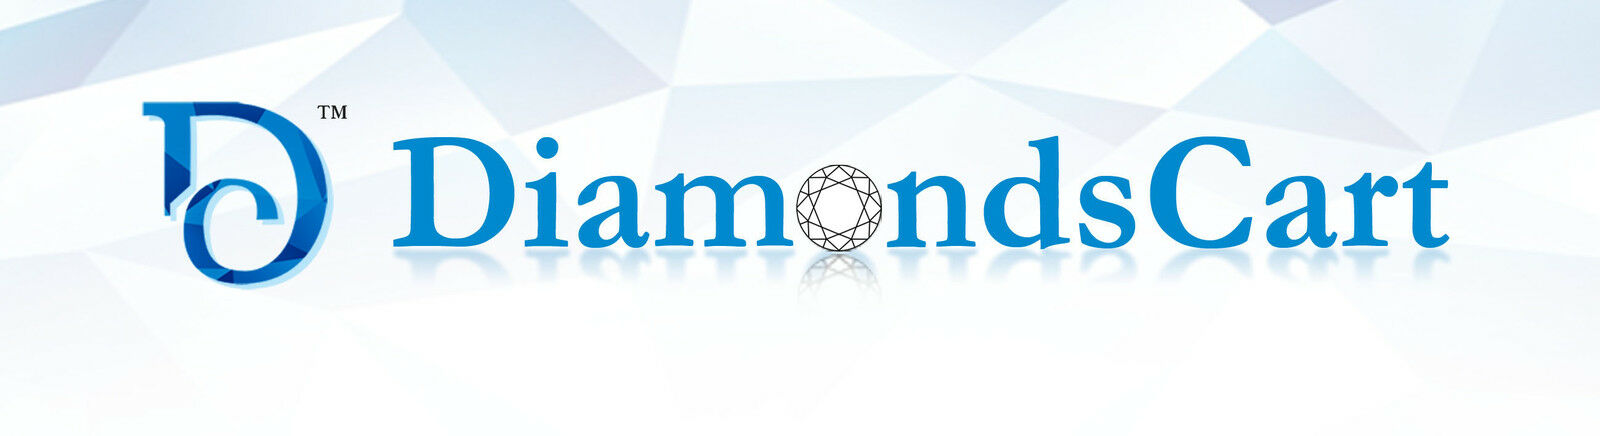 Diamondscart